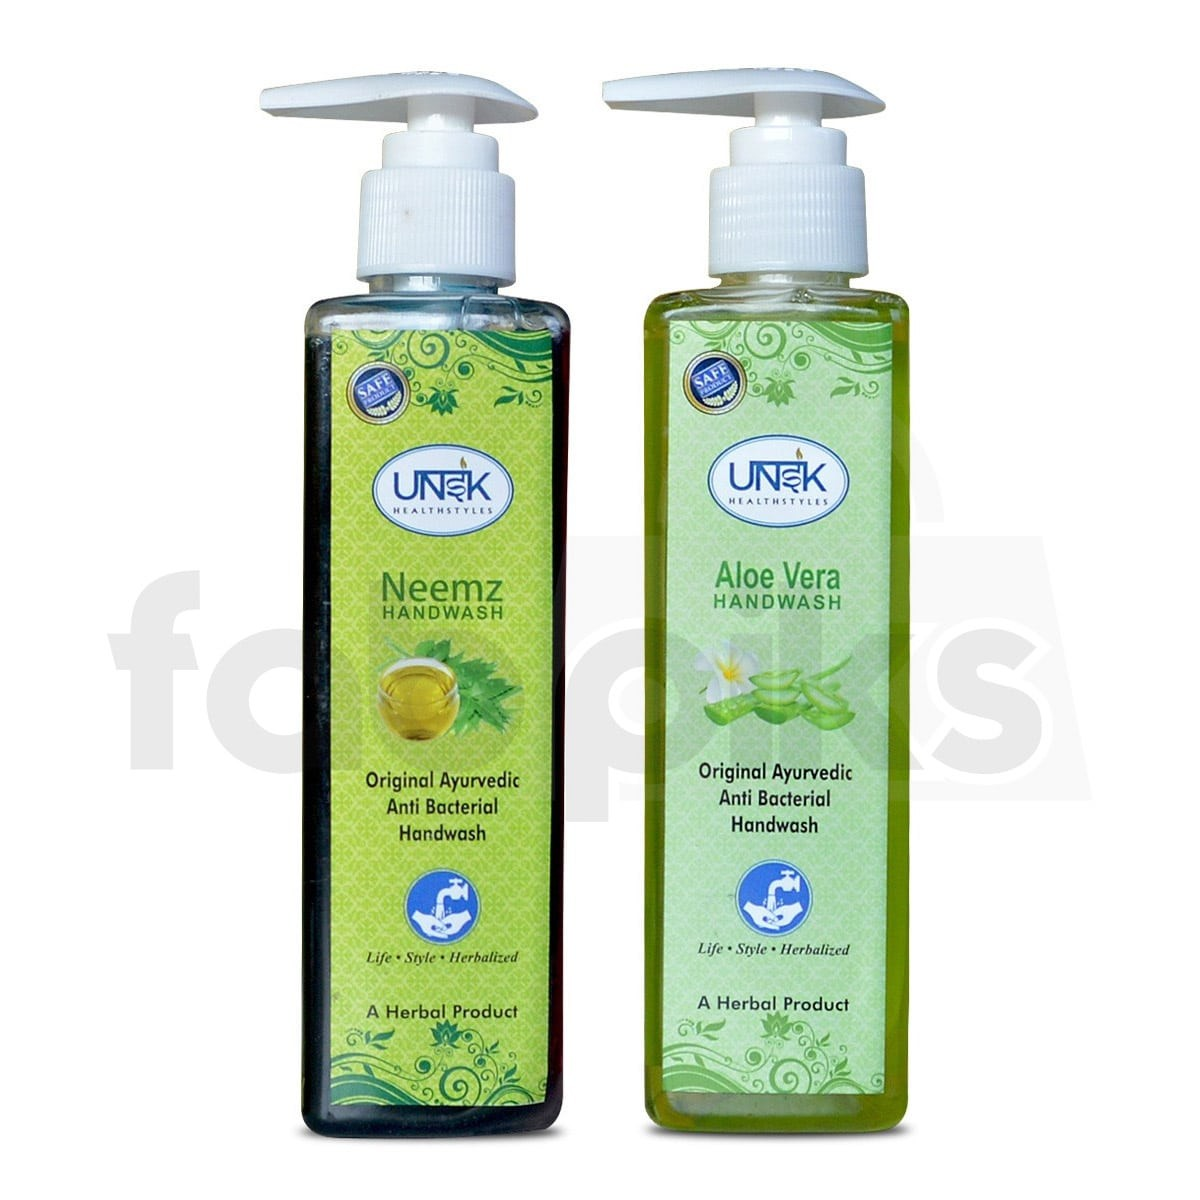 Herbal Handwash - Neemz/Aloe Vera (250 ml)